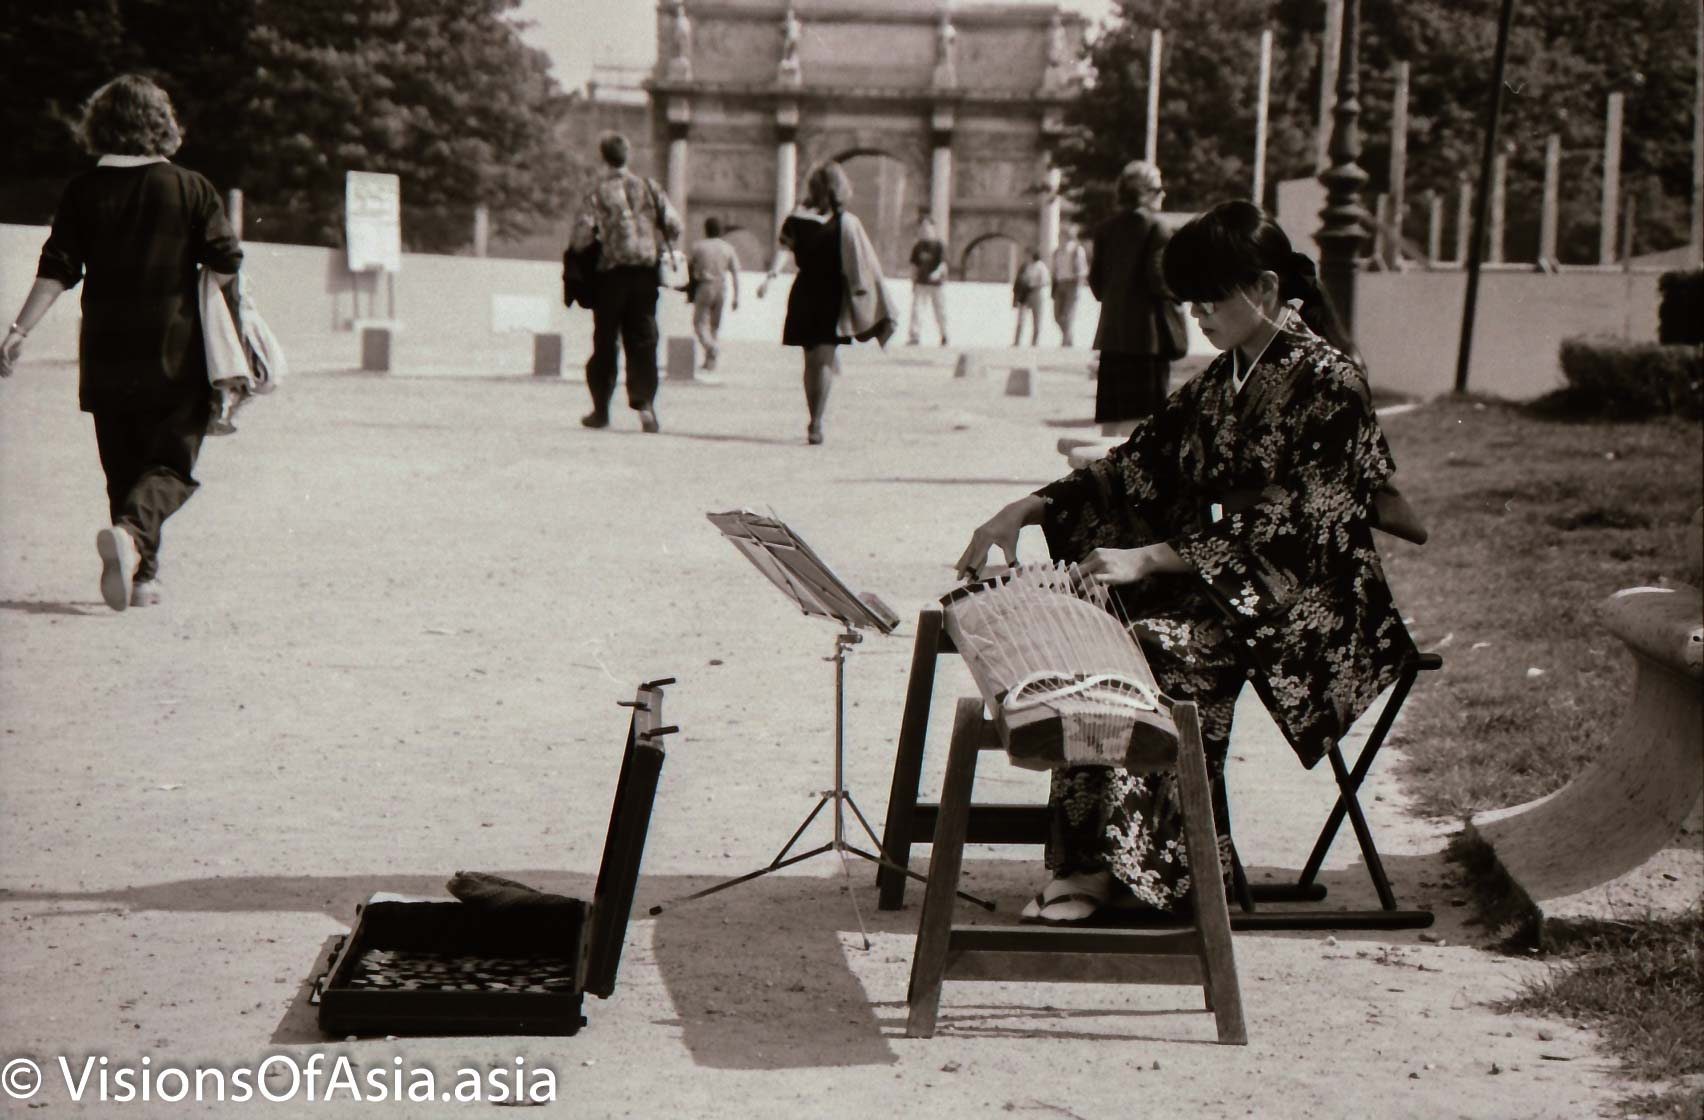 First encounter with Japan in France: the kimono musician in Paris